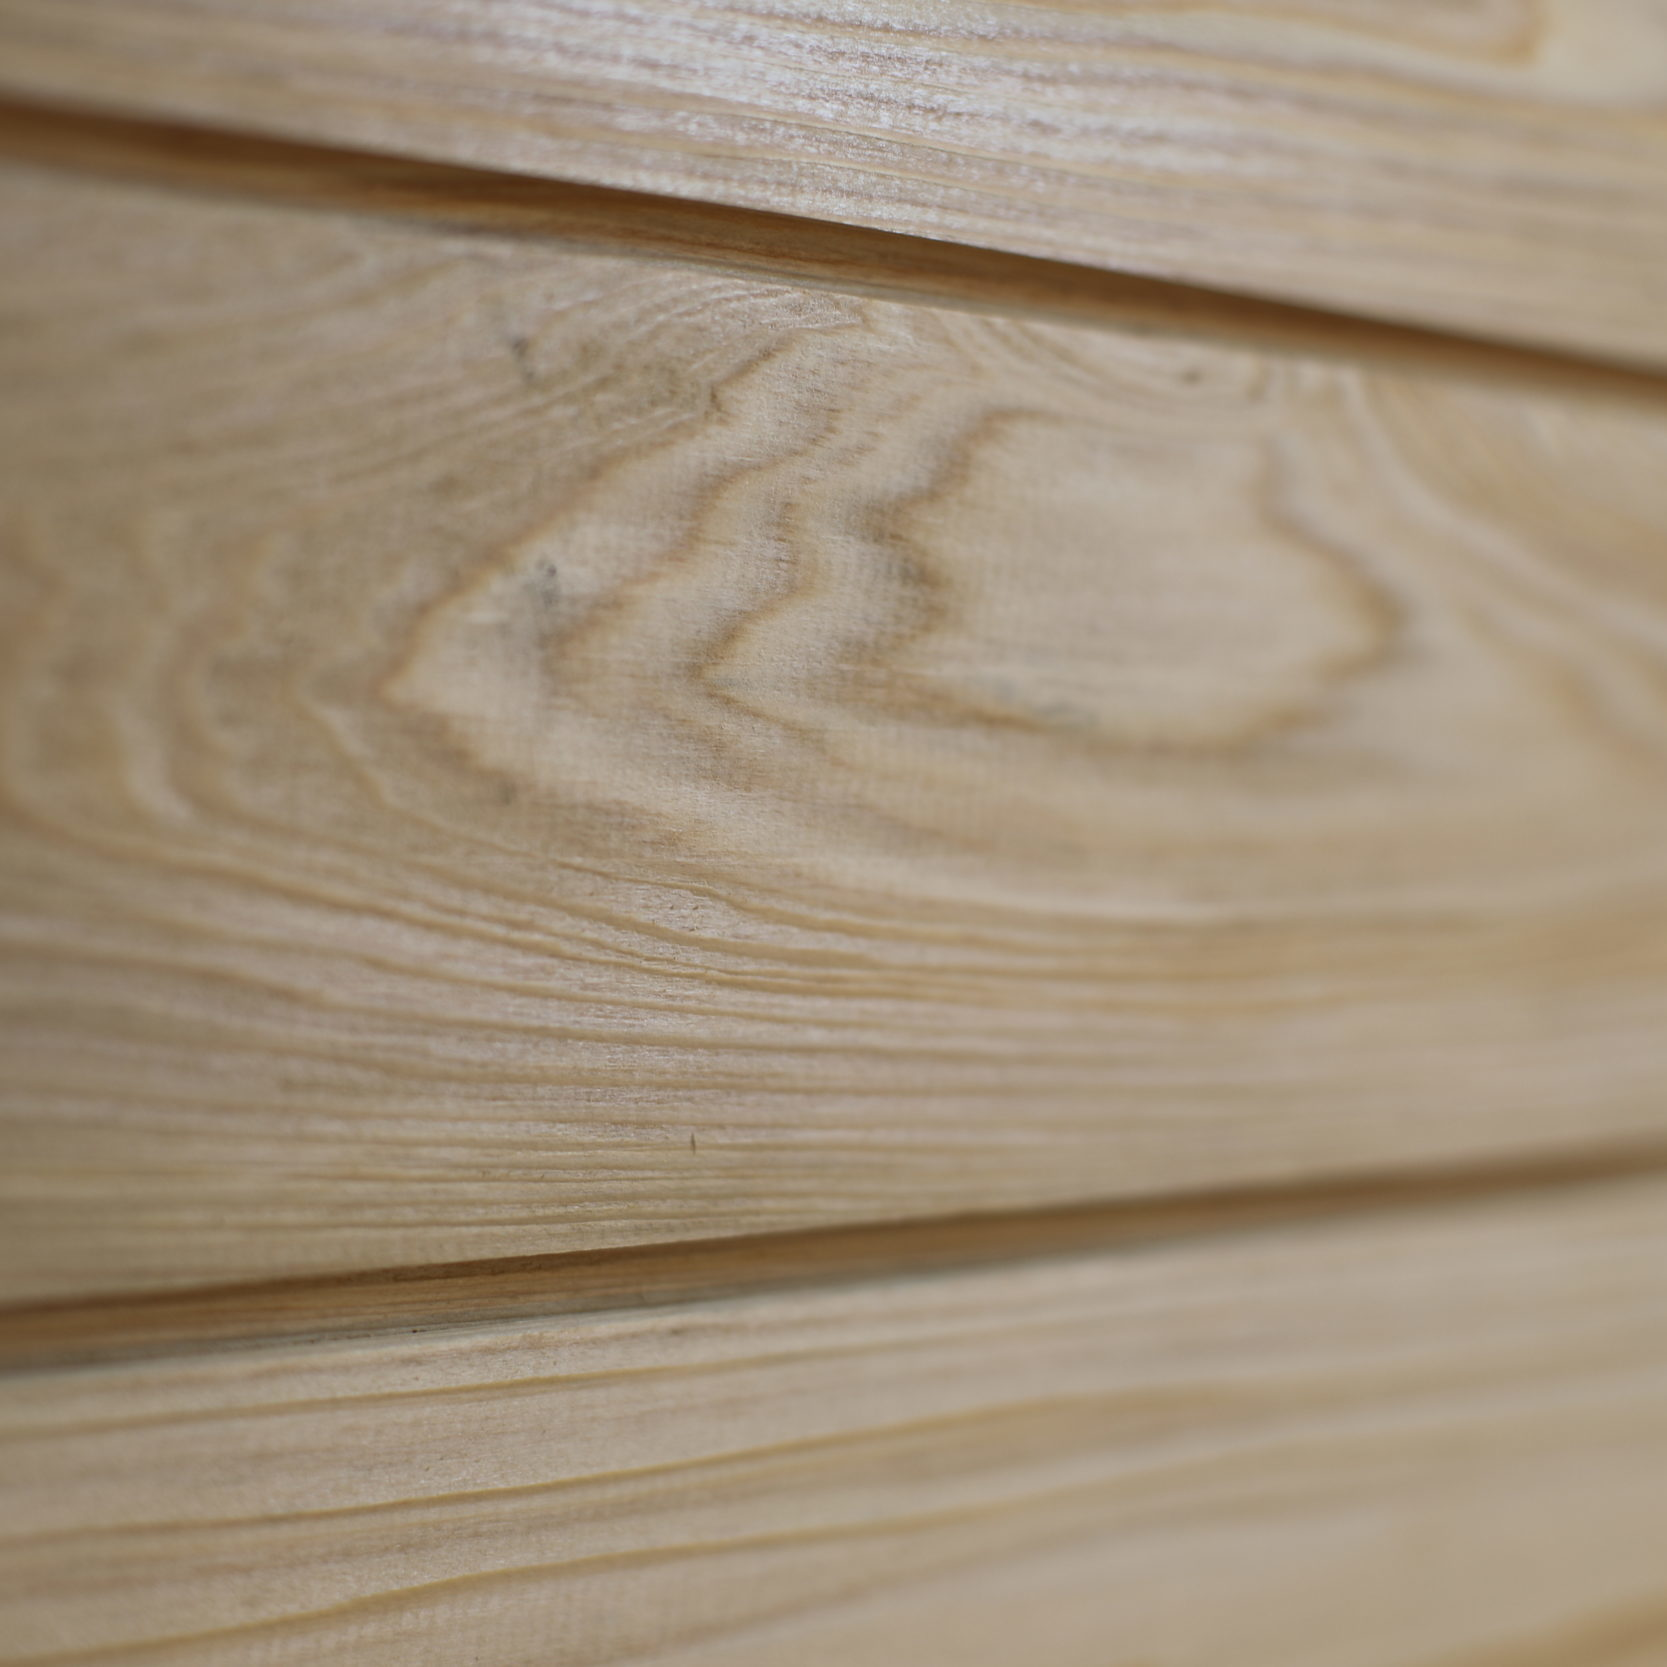 Cypress Siding Close-Up